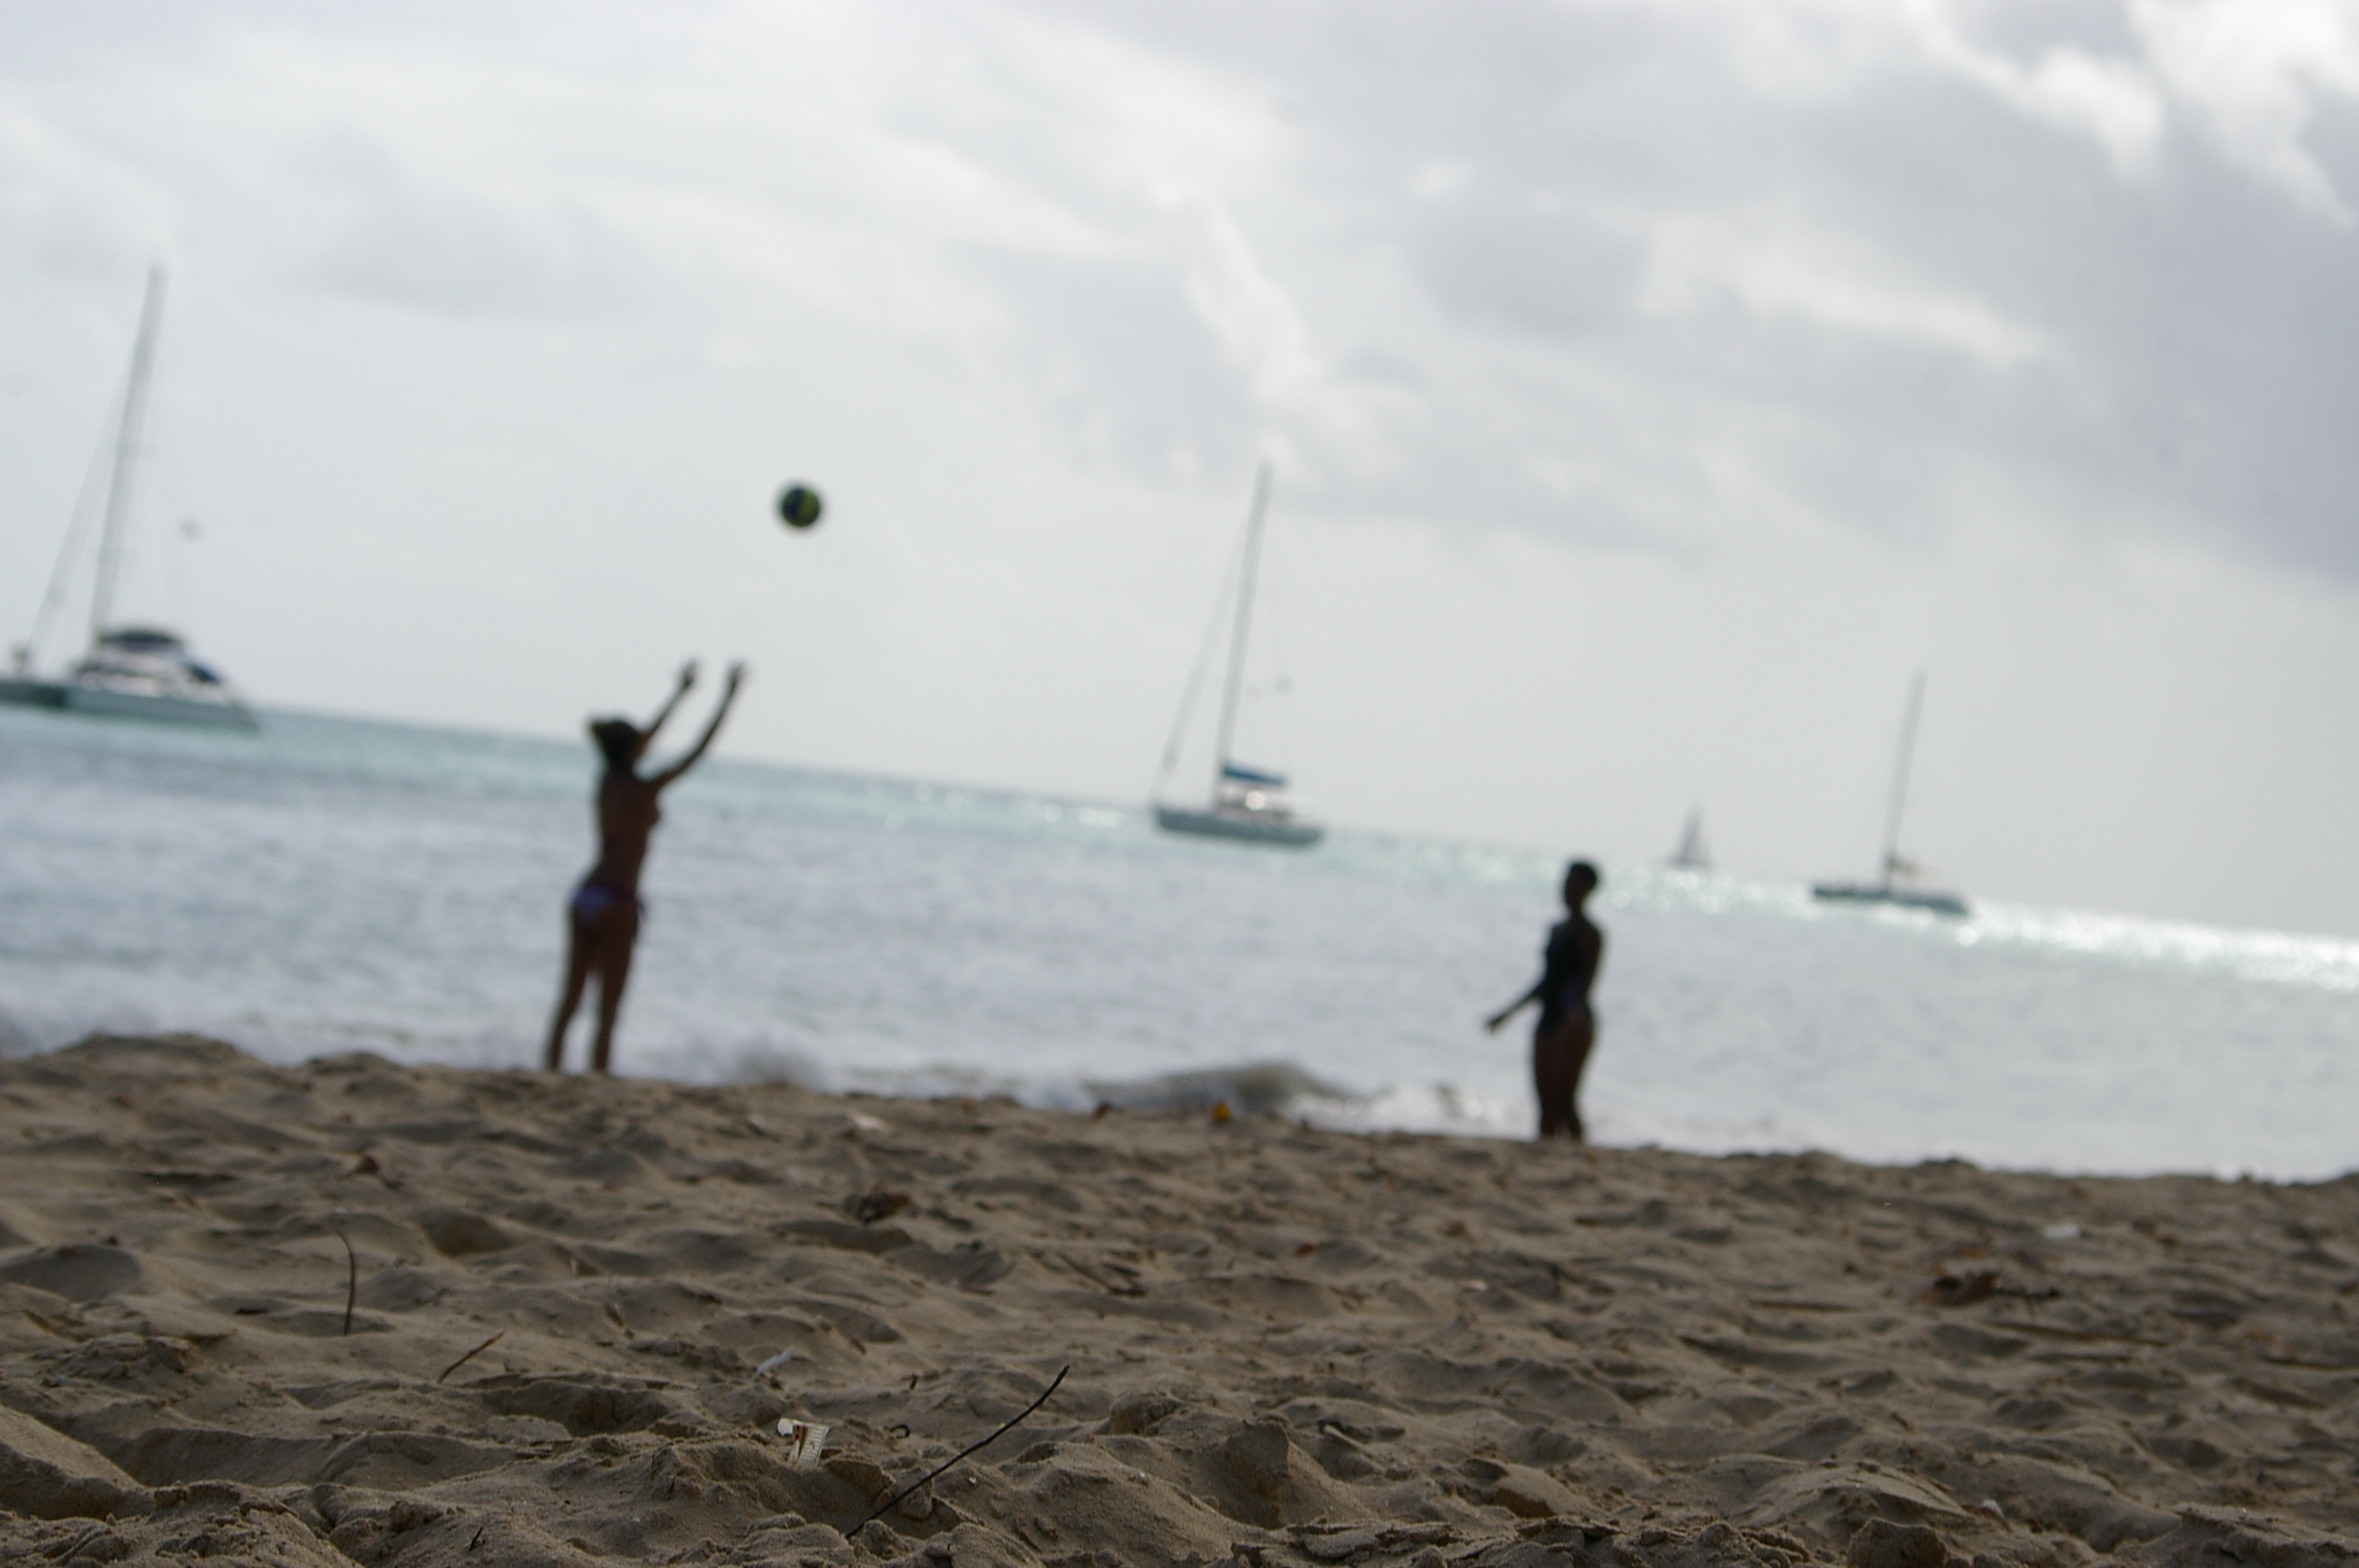 Volleyball at the beach photo